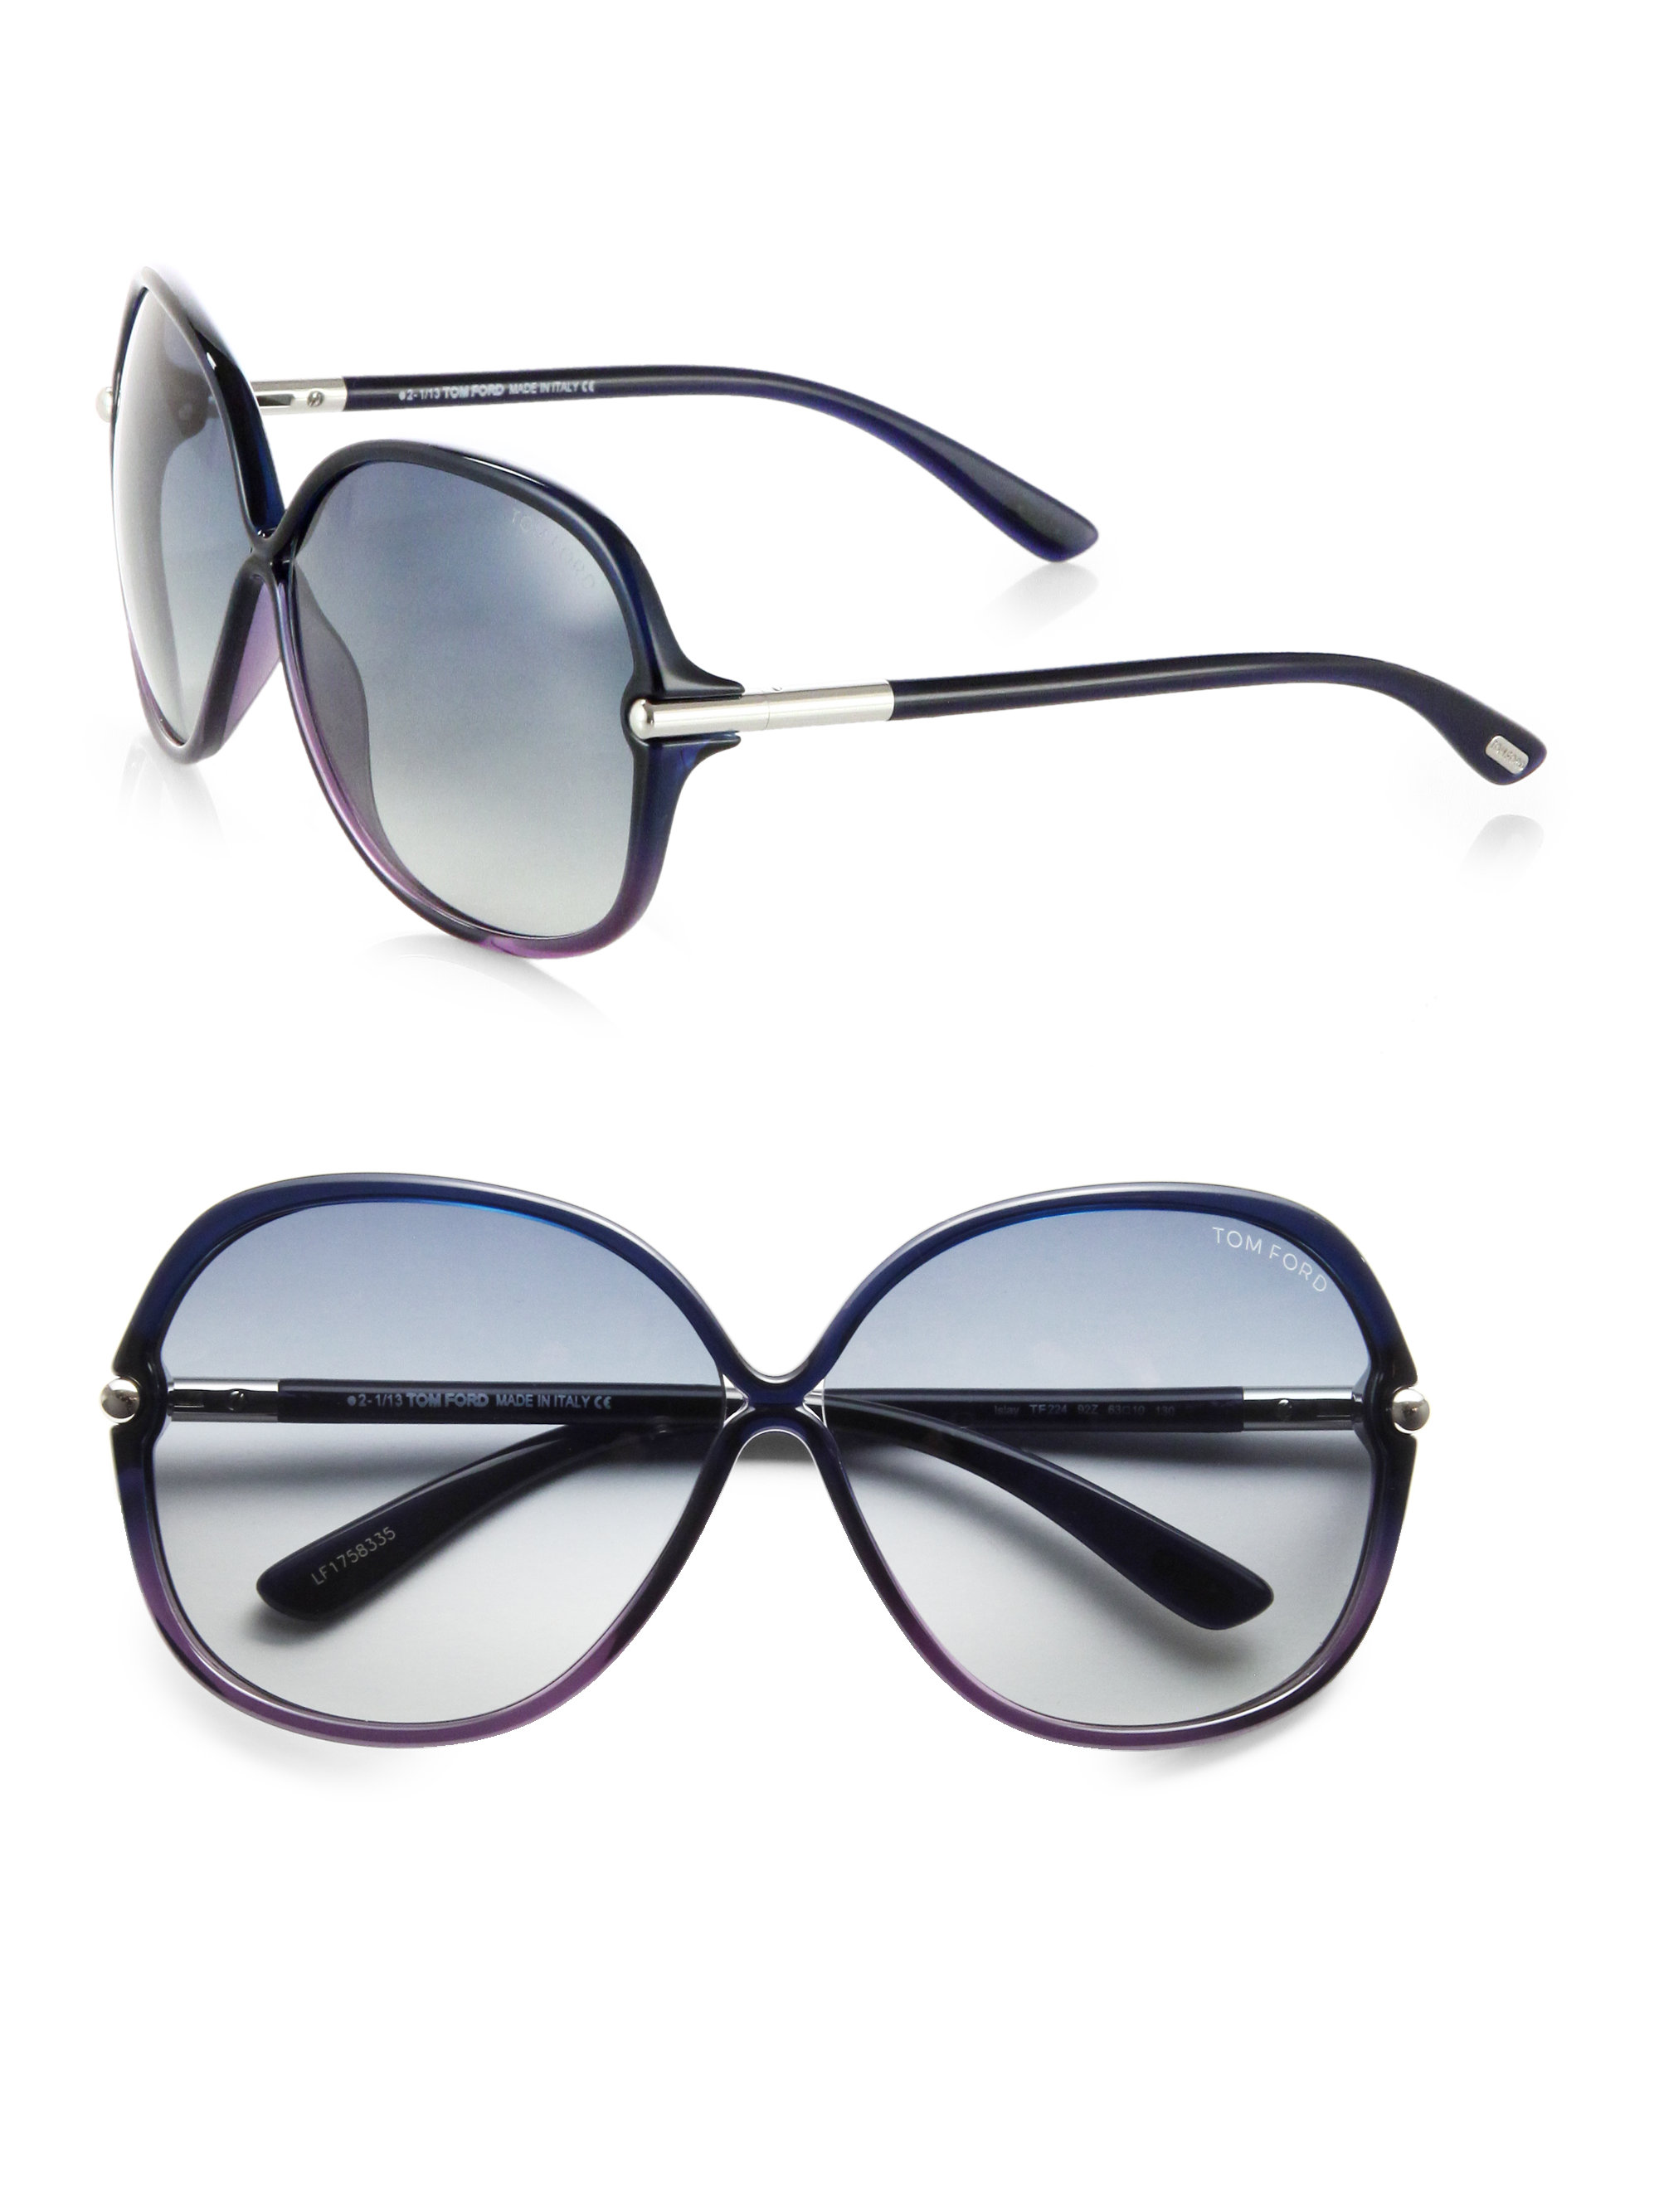 c361d8901db4b Tom Ford Islay Oversized Sunglasses in Blue - Lyst